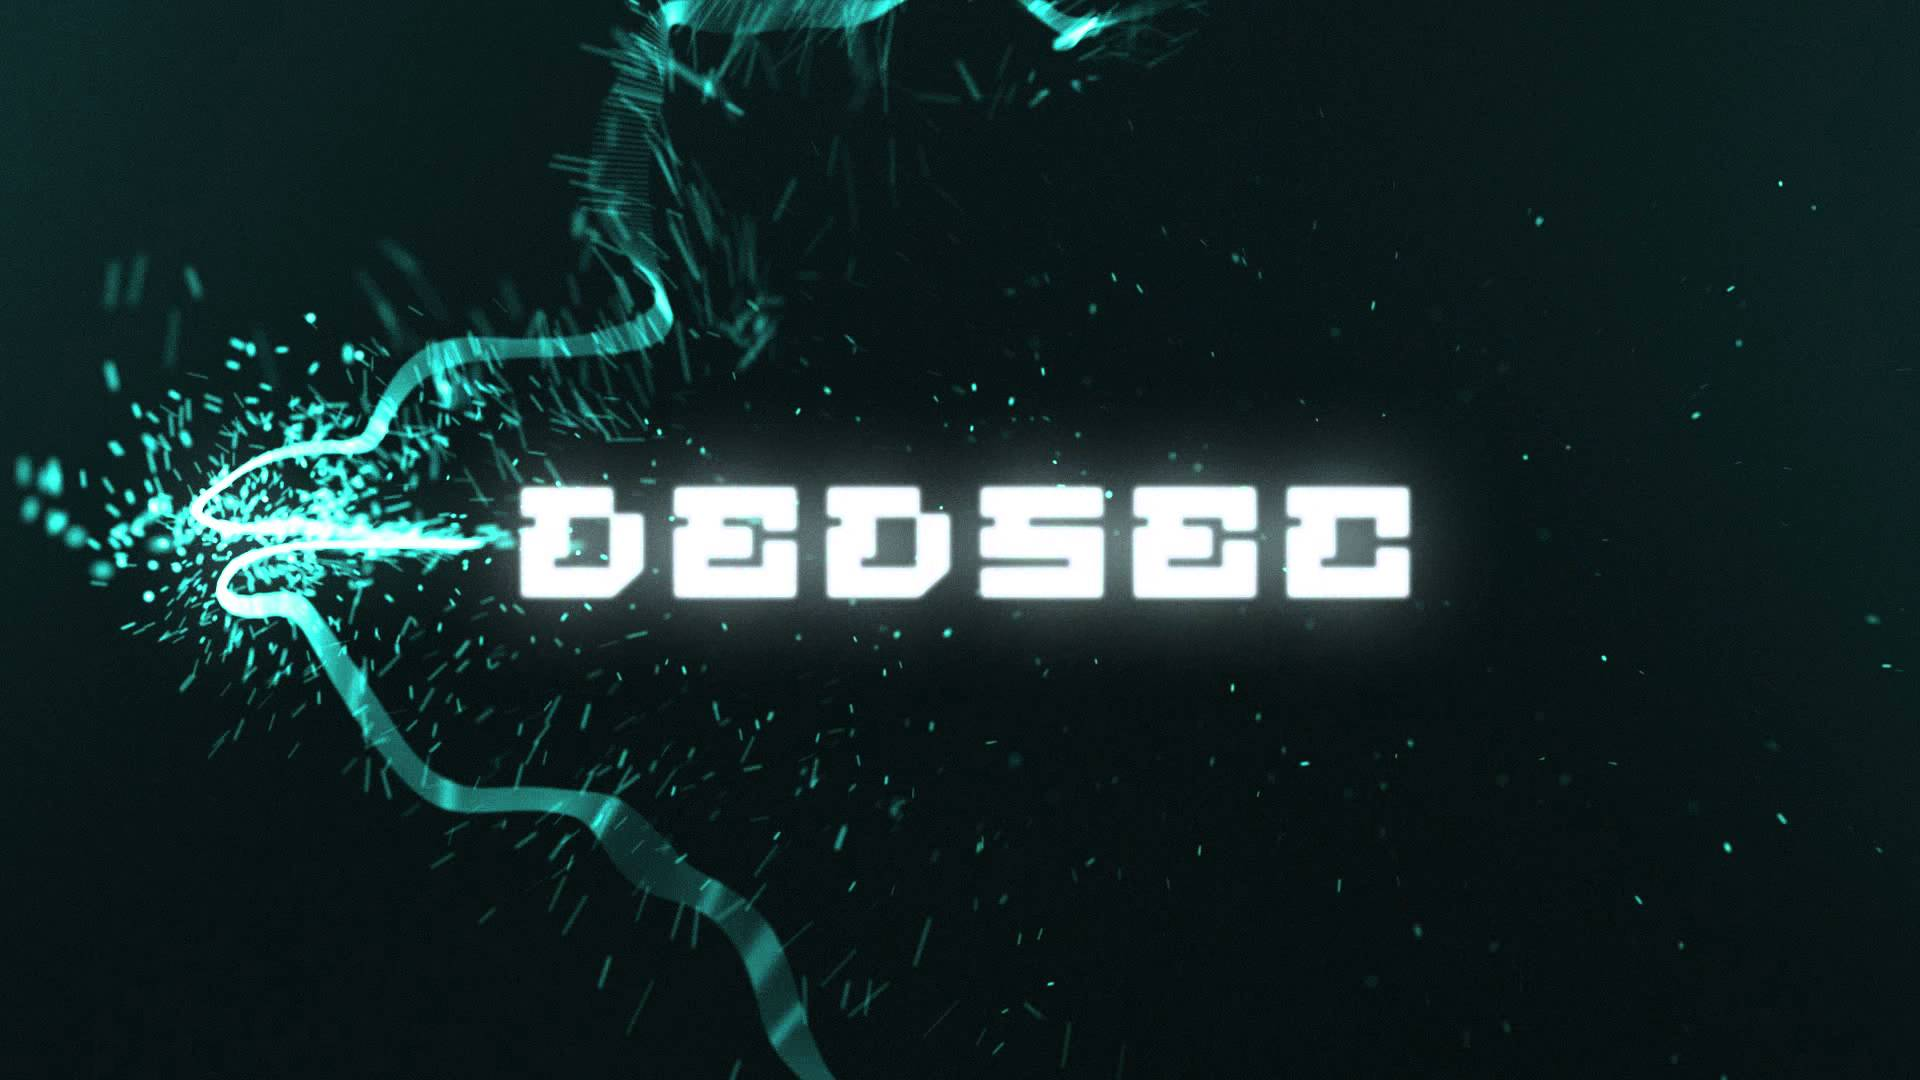 Dedsec Logo Watch Dogs